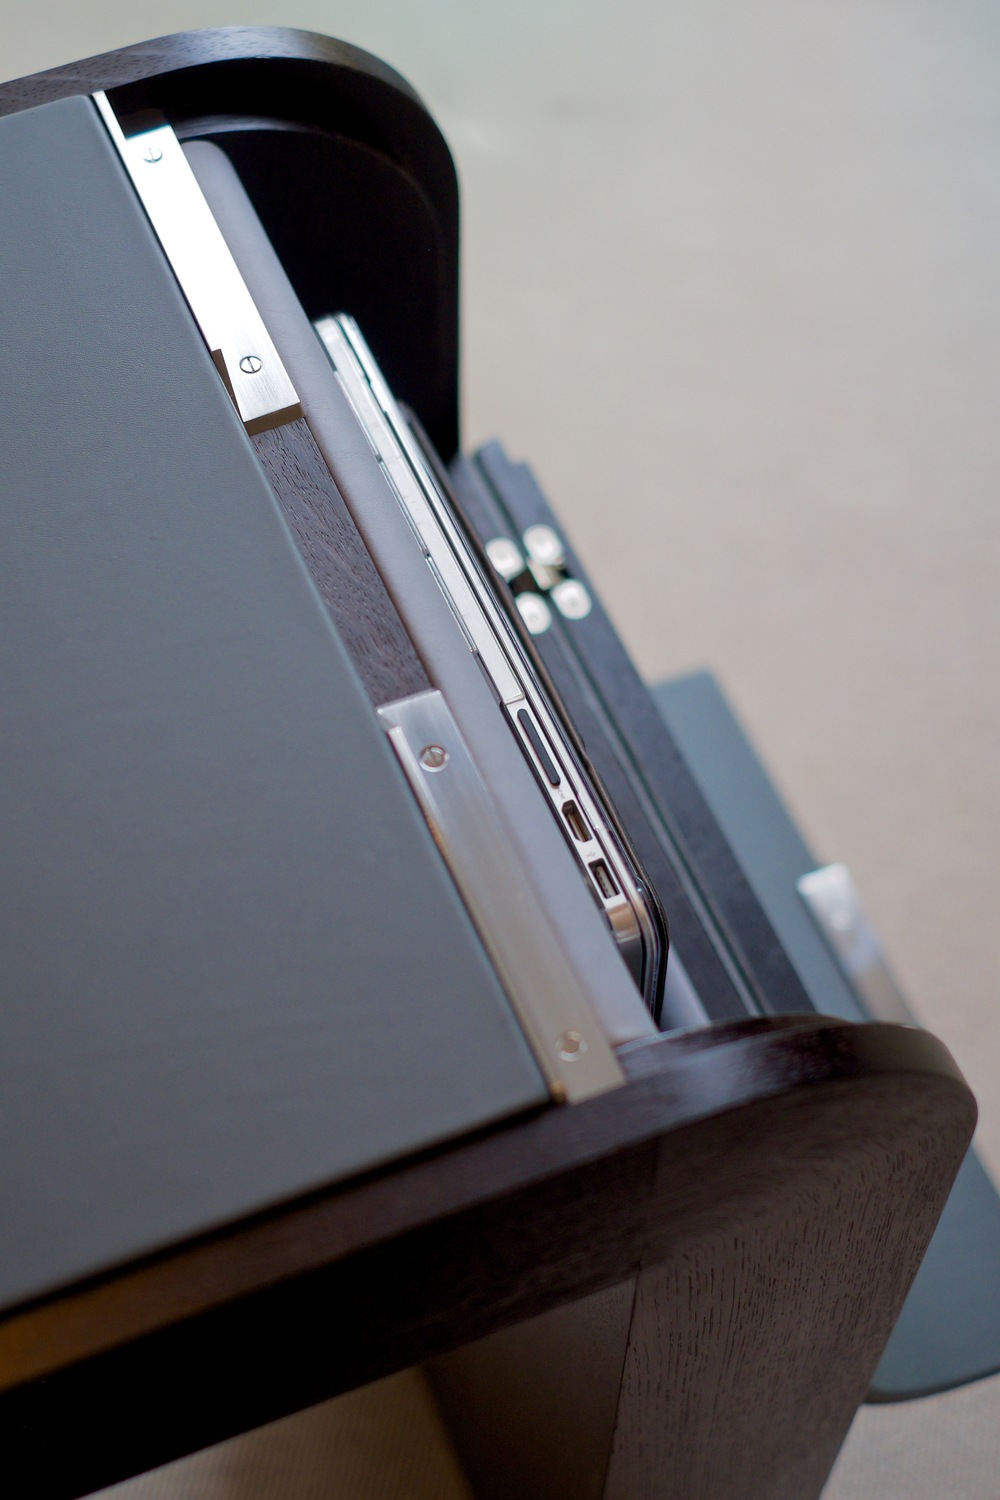 Macbook and iPad in the leather lined storage compartment. The door is left open, but can be shut completely, in-keeping with the desk clean lines